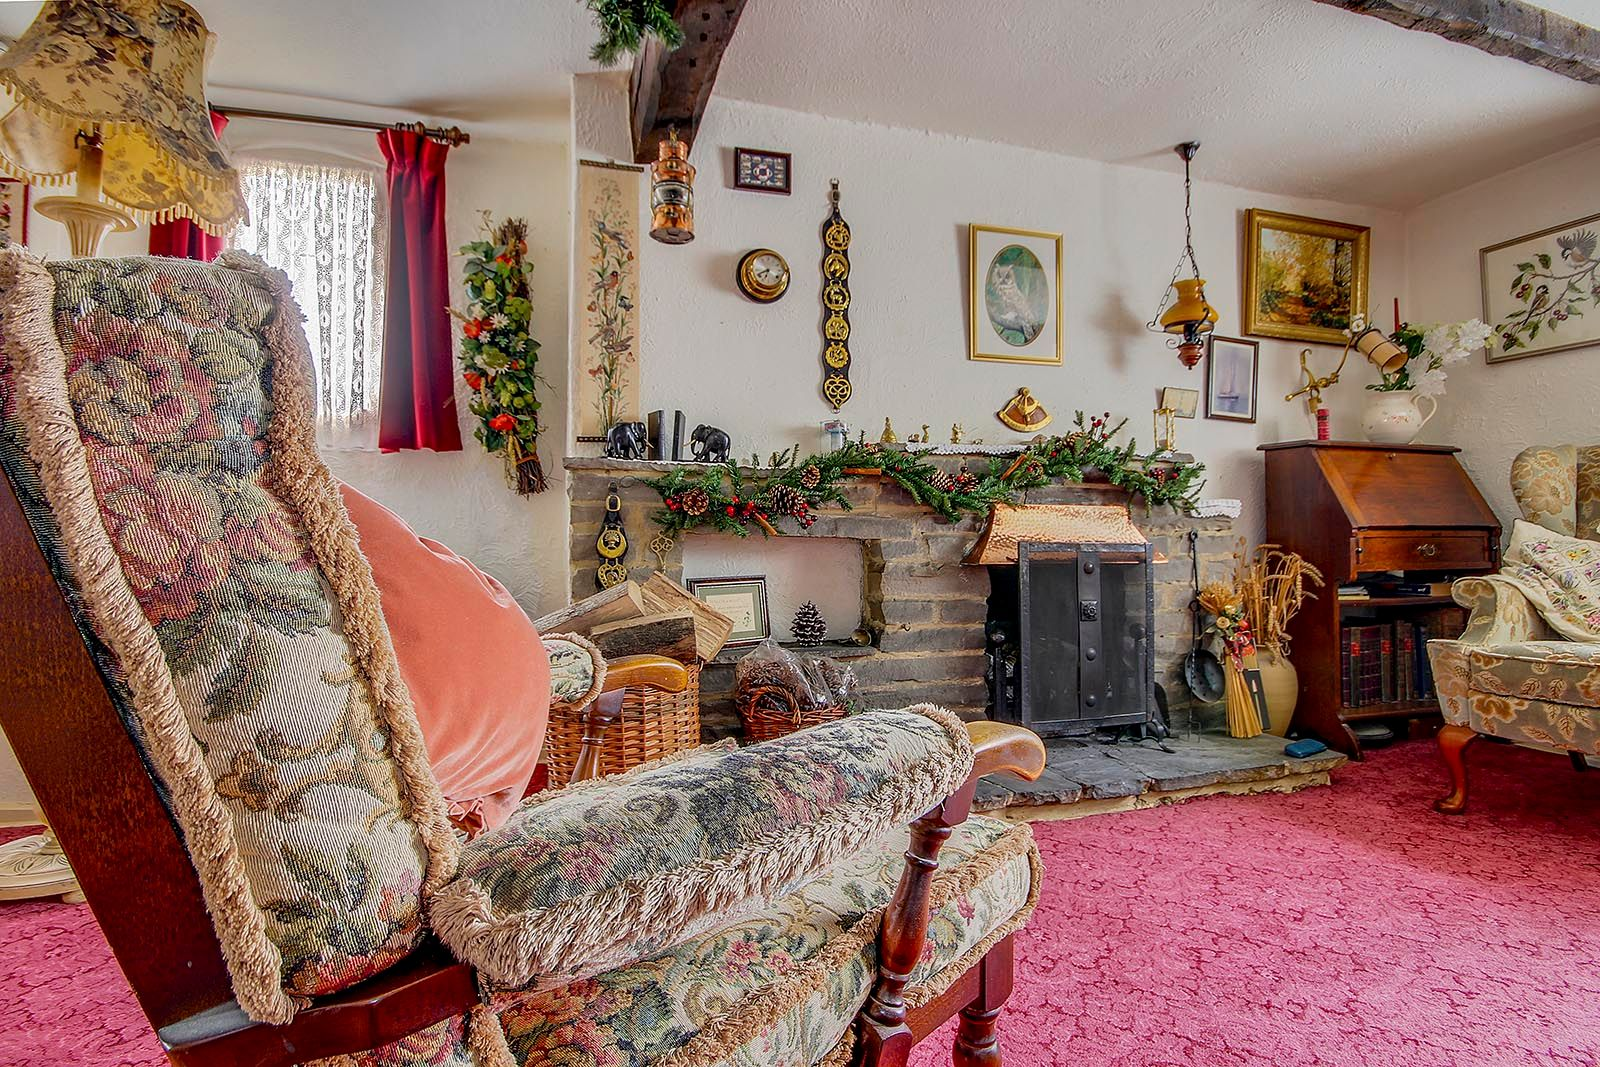 2 bed House for sale in Arundel - Lifestyle (Property Image 17)